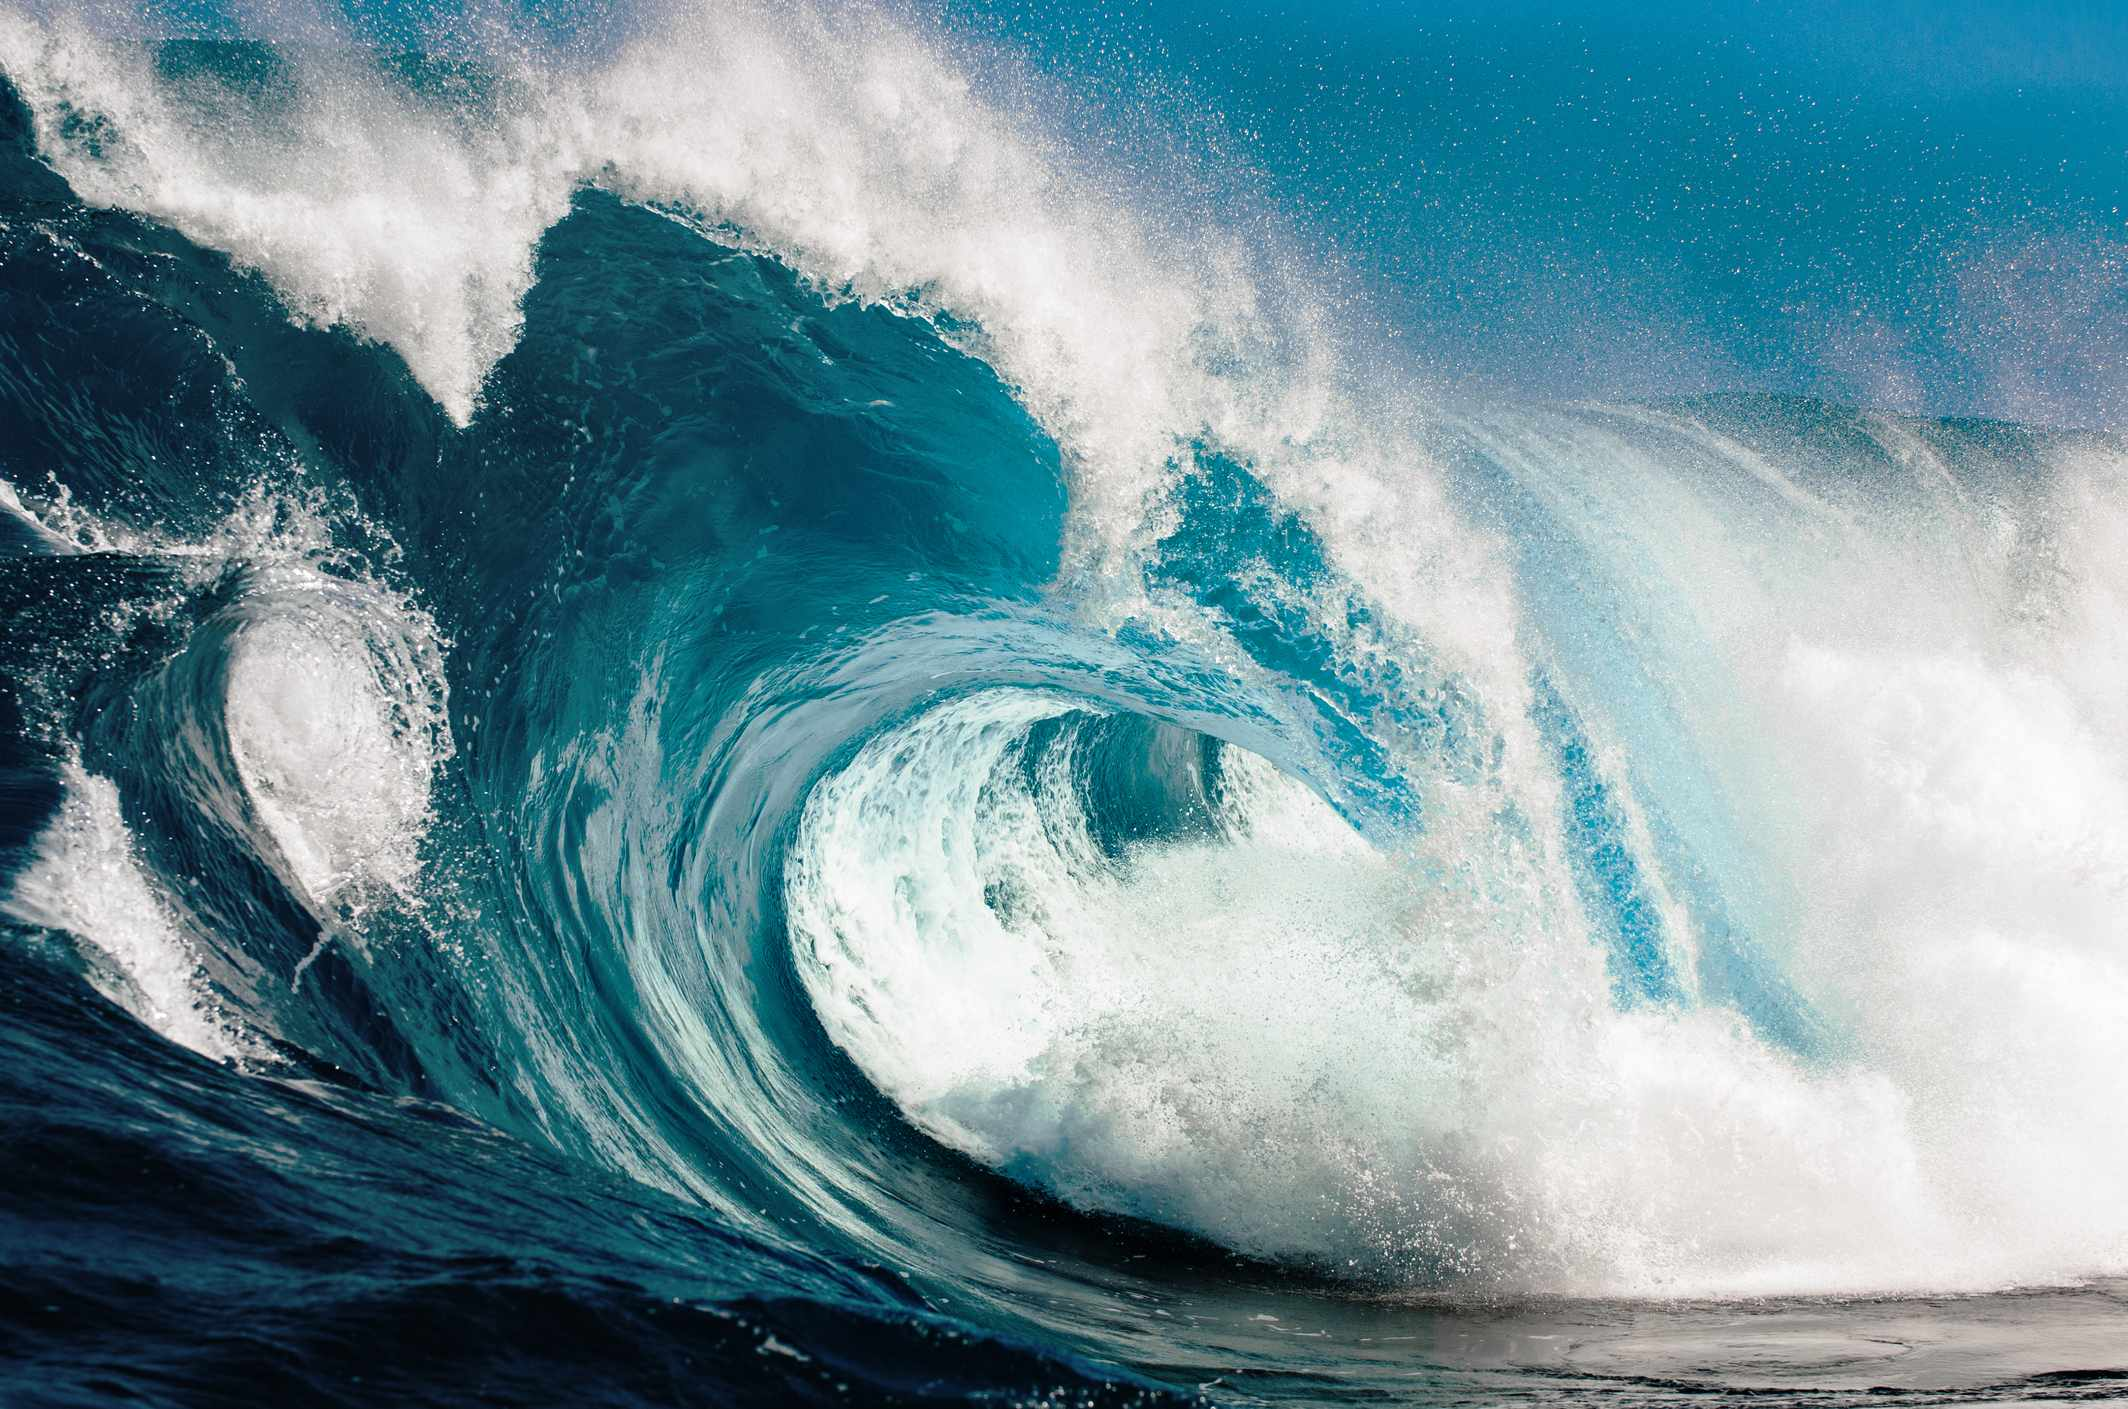 How do you generate electricity from waves? © Getty Images